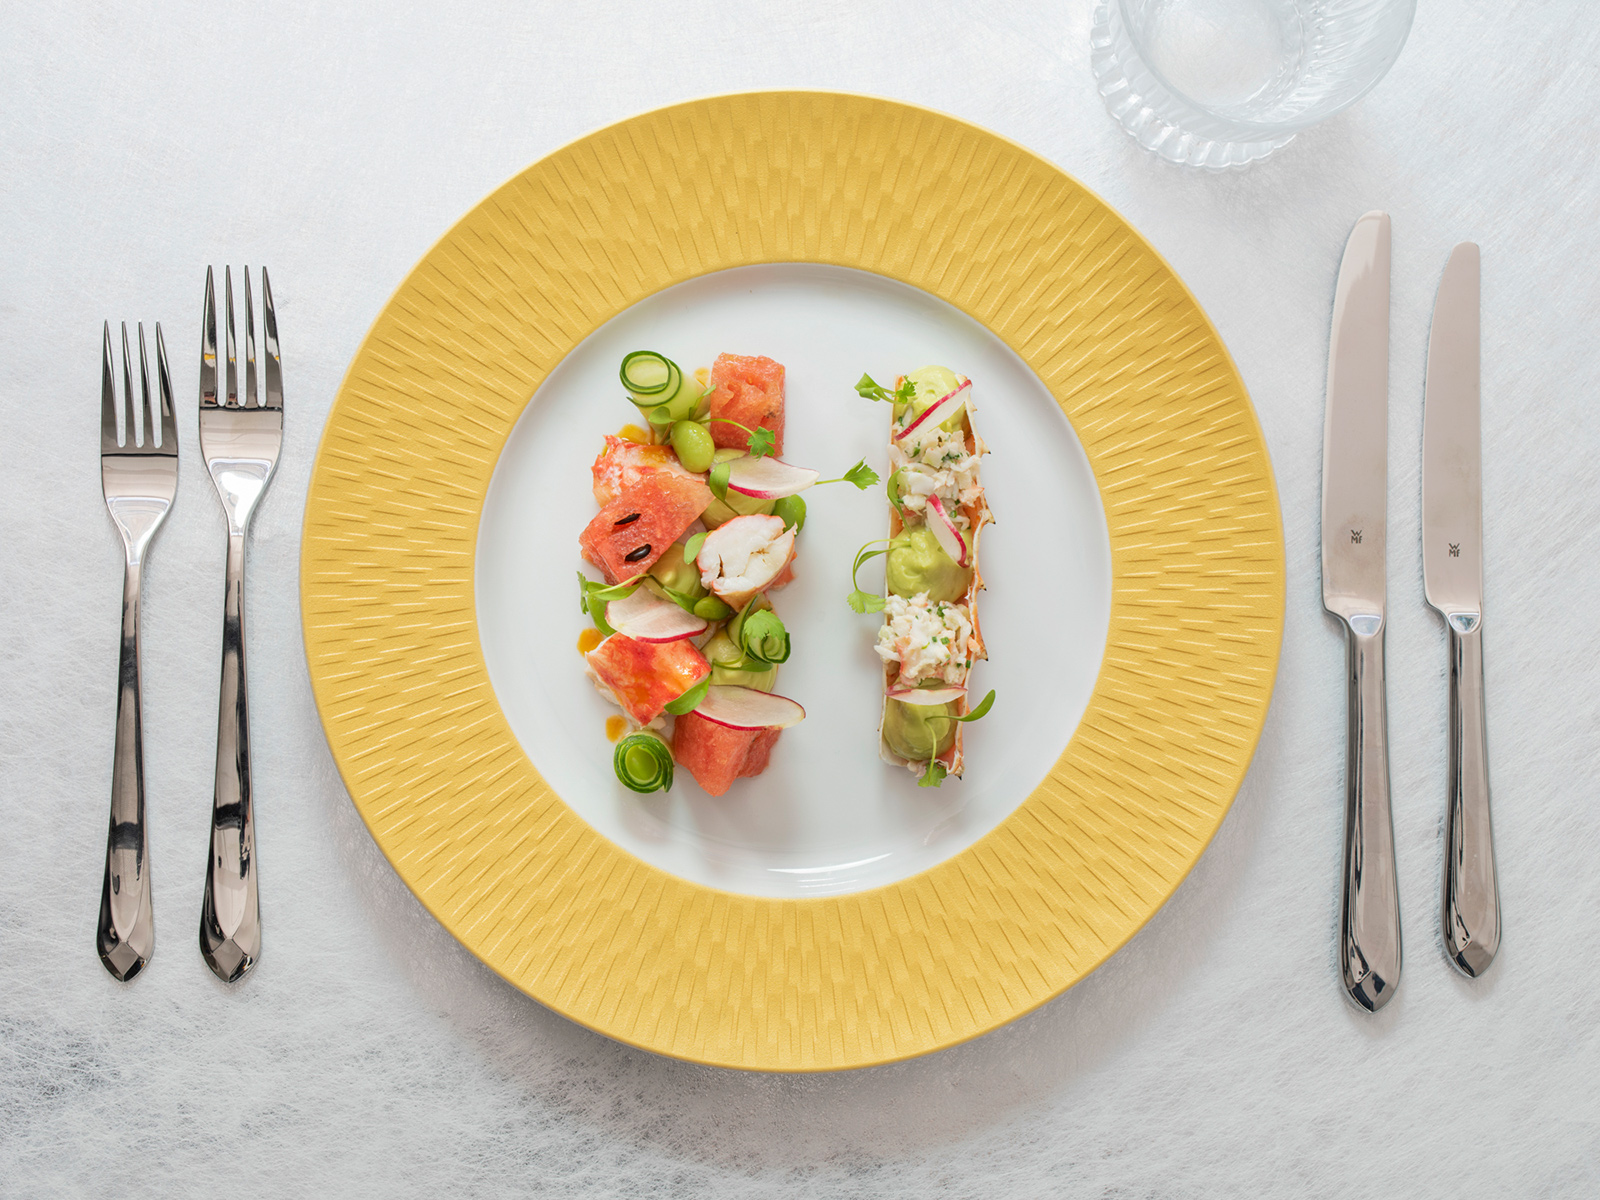 Alaskan snow crab salad with watermelon, radish and lobster dressing. Courtesy of Brasserie of Light